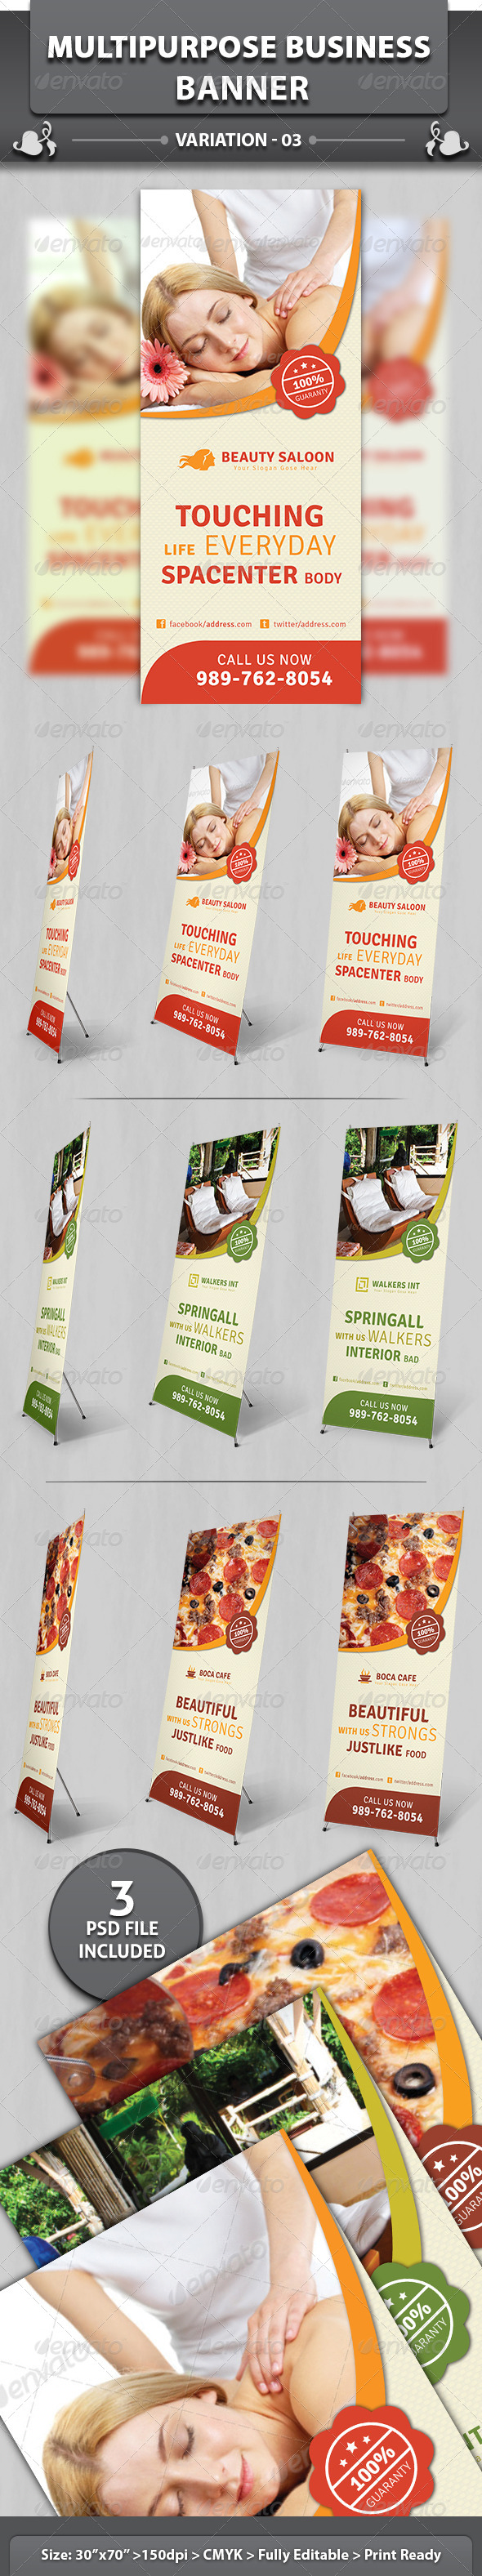 Multipurpose Business Banner V2 - Signage Print Templates